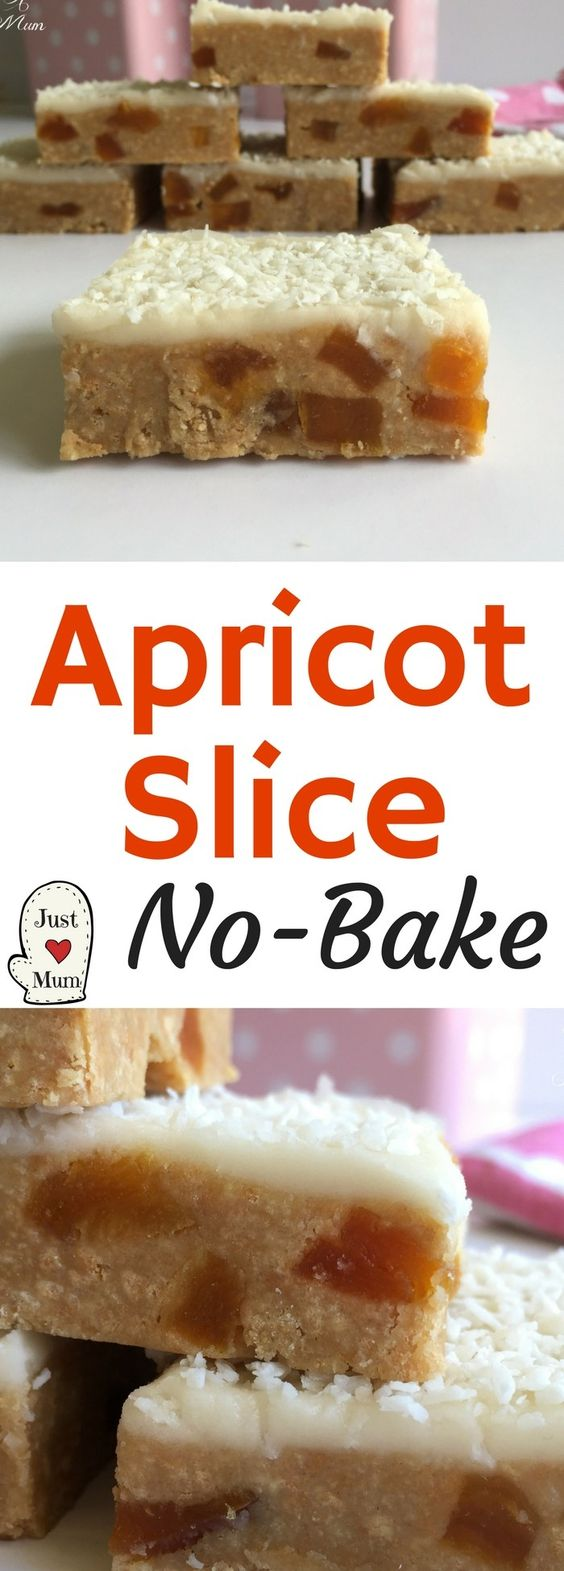 Just A Mum's No Bake Apricot Slice